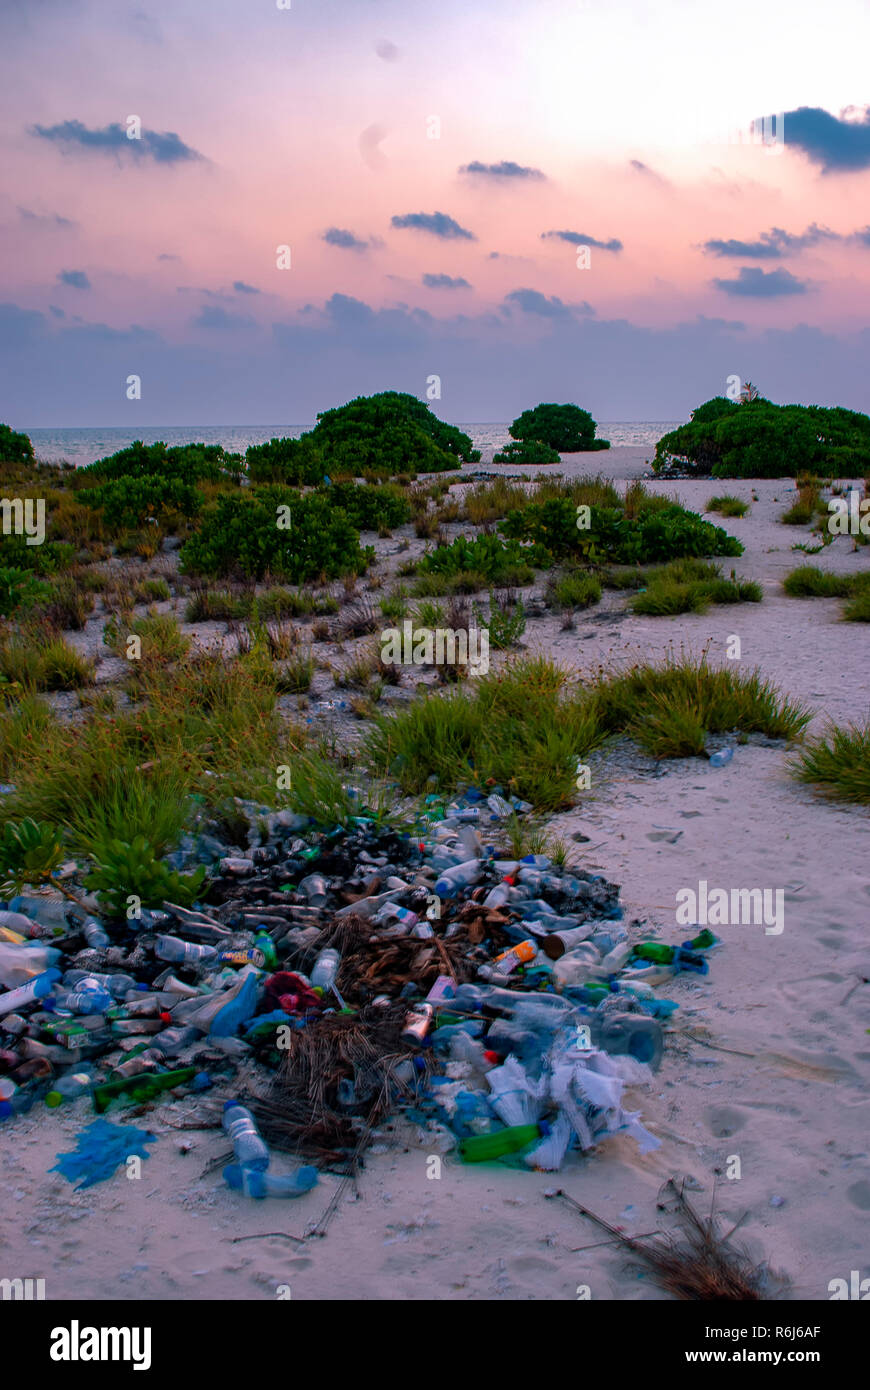 Litter on a tropical uninhabited island in the Indian Ocean Stock Photo